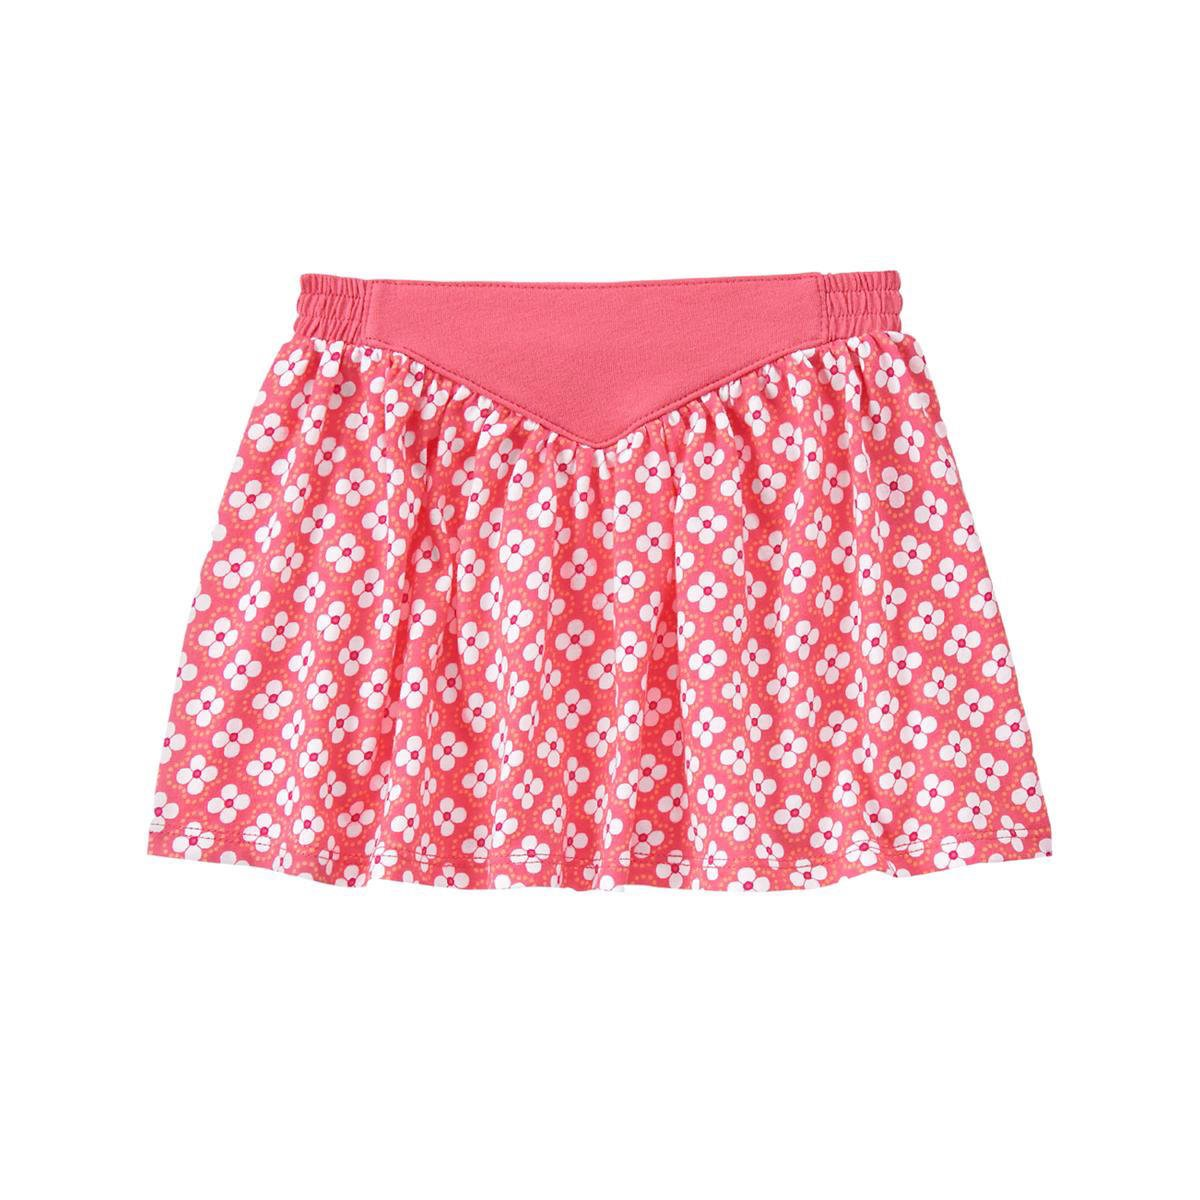 Gymboree Toddler Girls Watermelon Twirl Skirt 4T